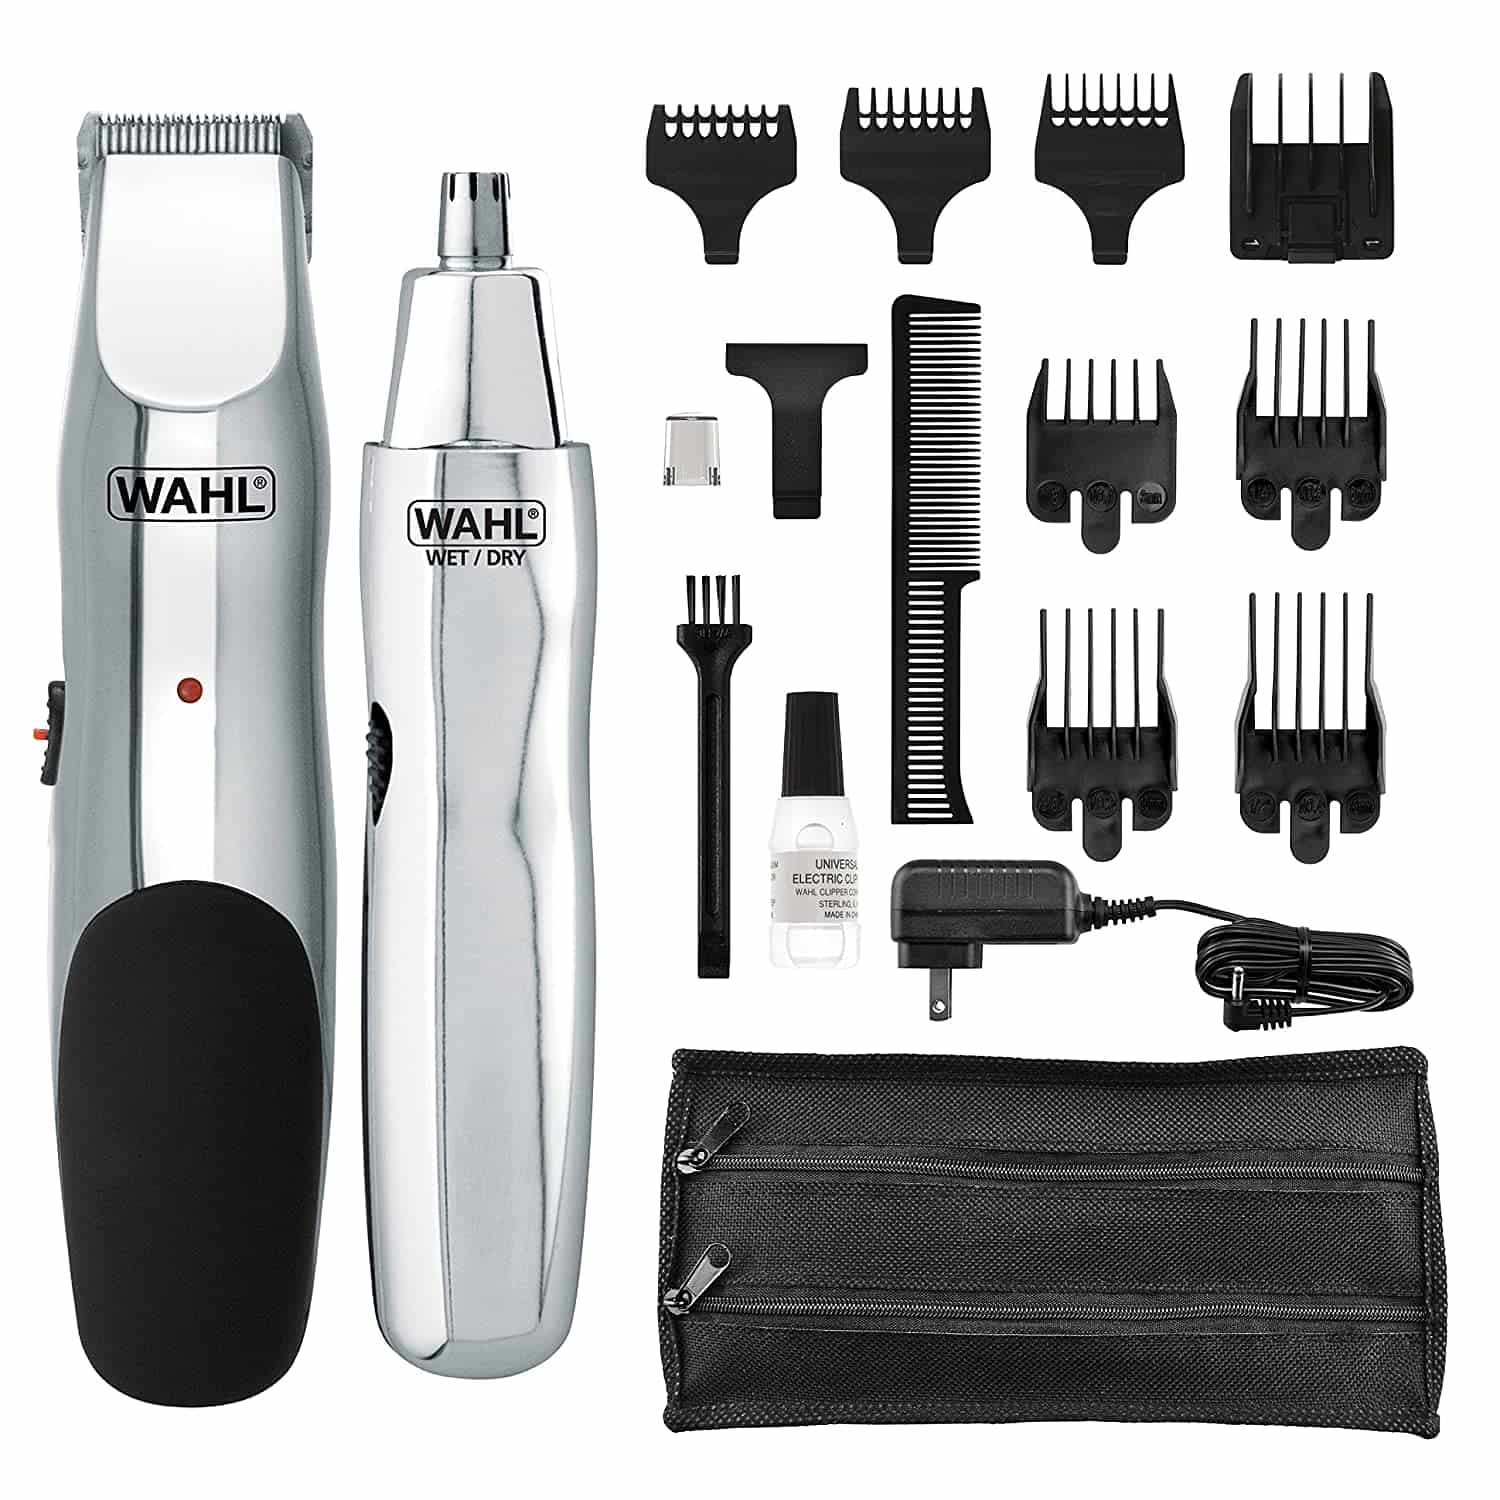 Wahl 5622 Groomsman Rechargeable Trimmer